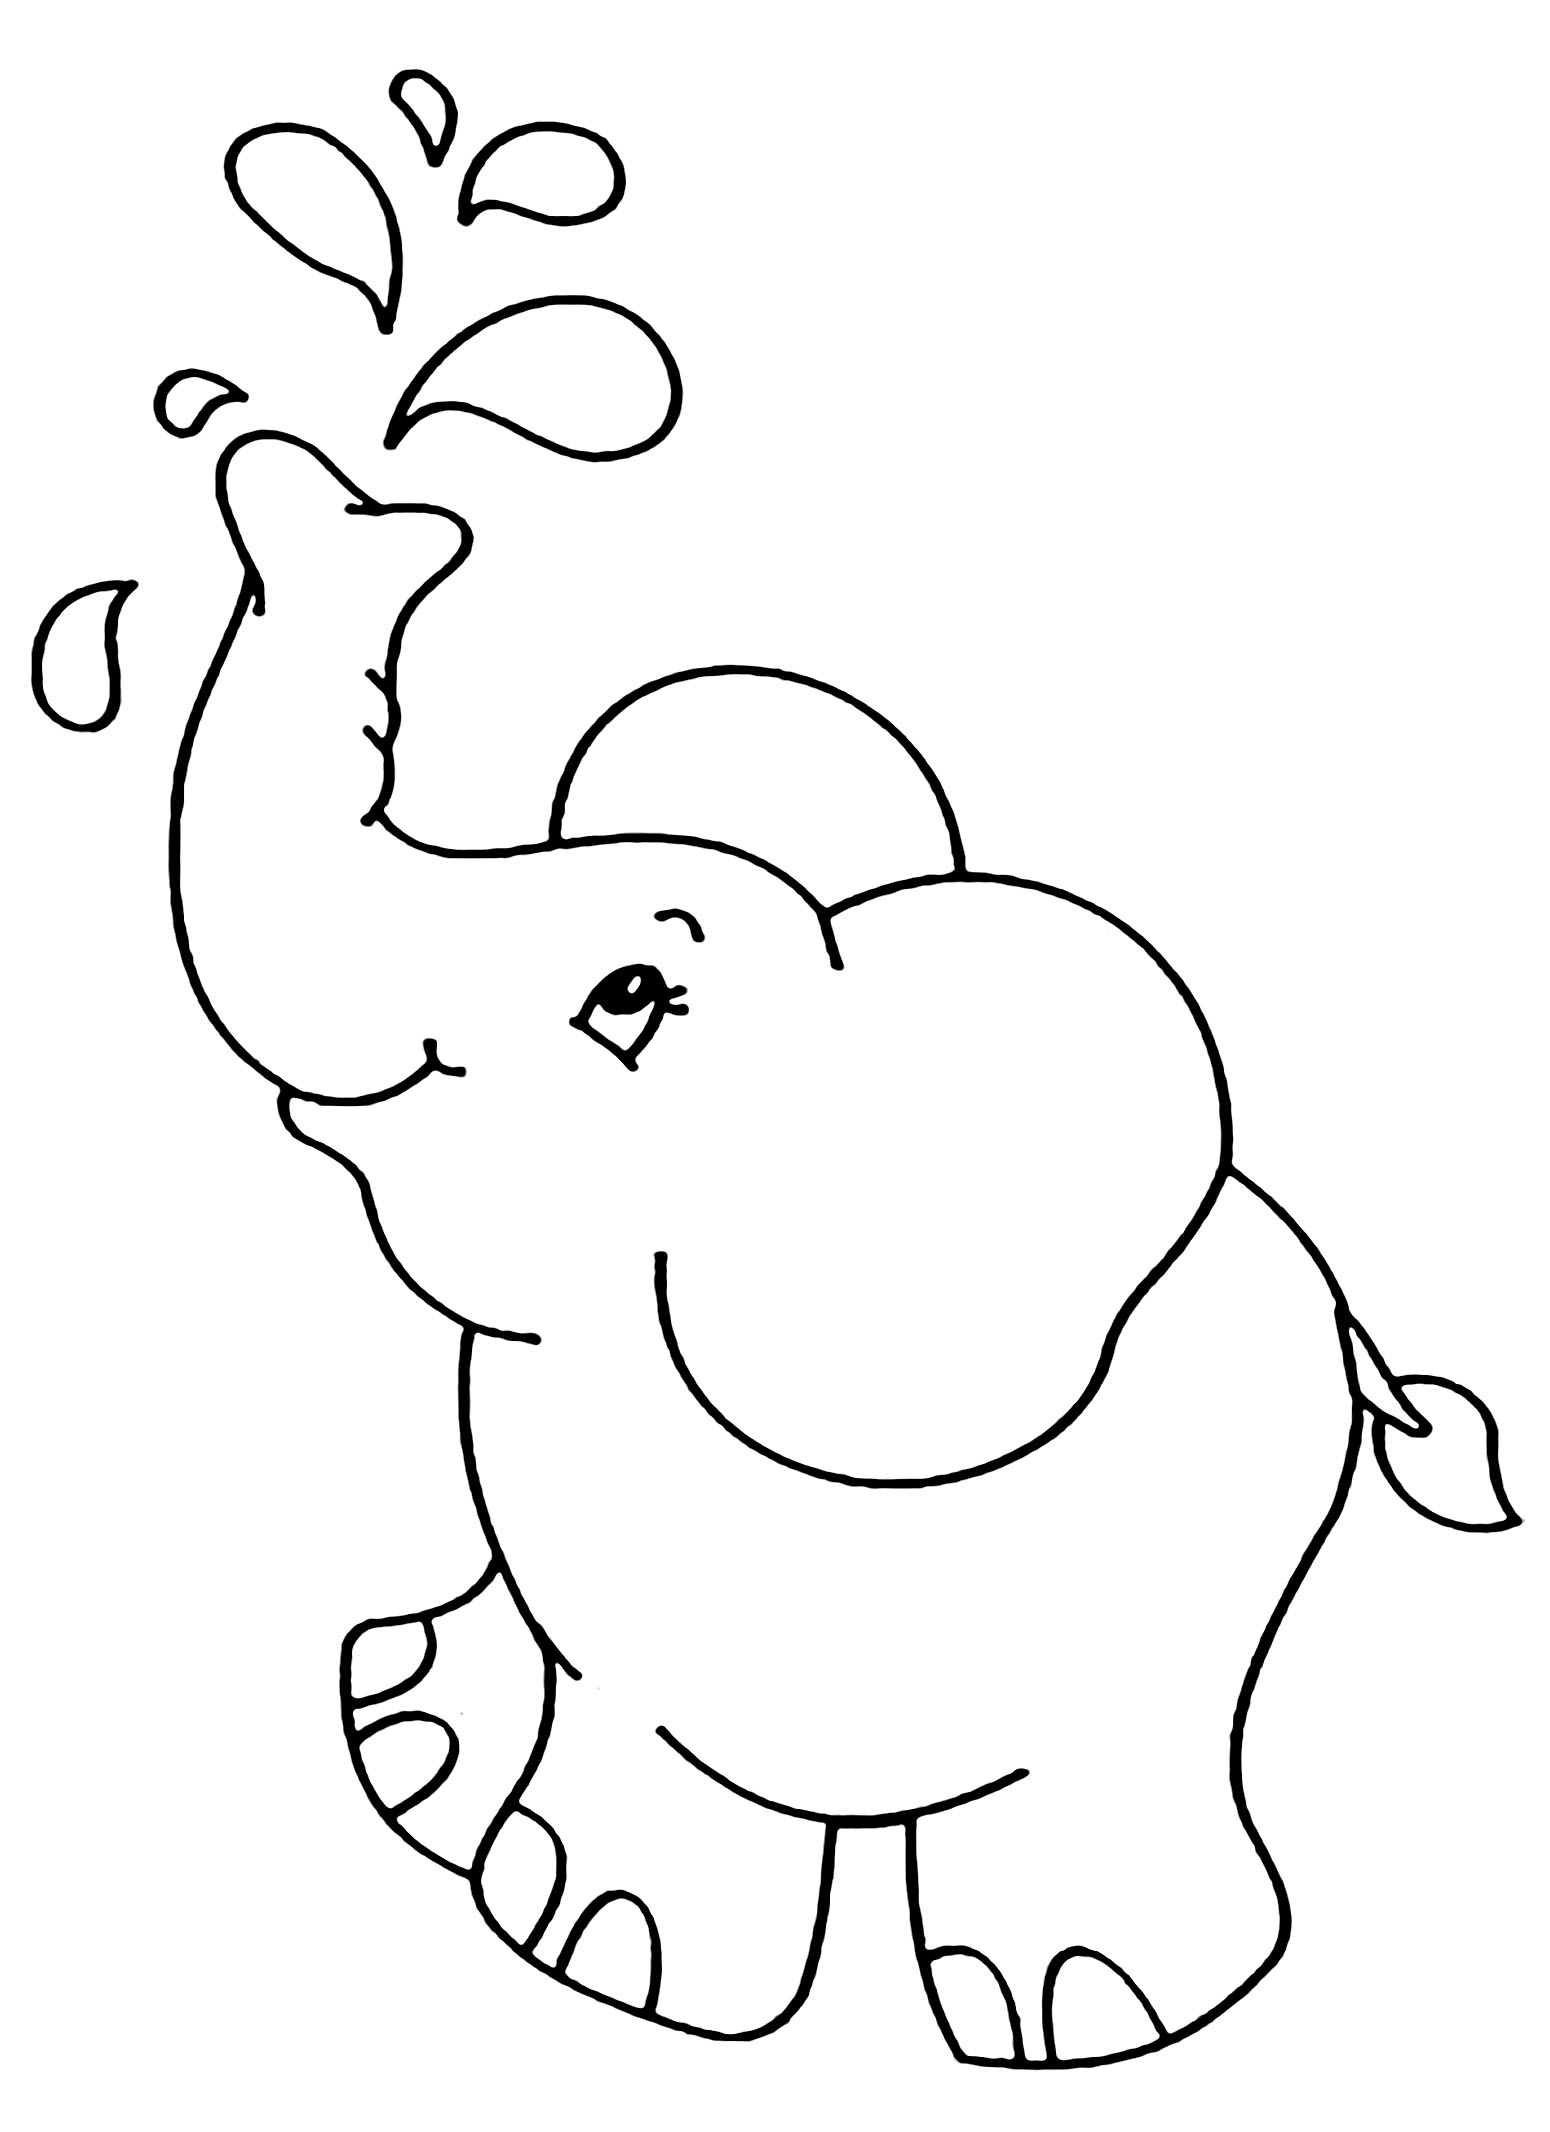 elephant for coloring free printable elephant coloring pages for kids for elephant coloring